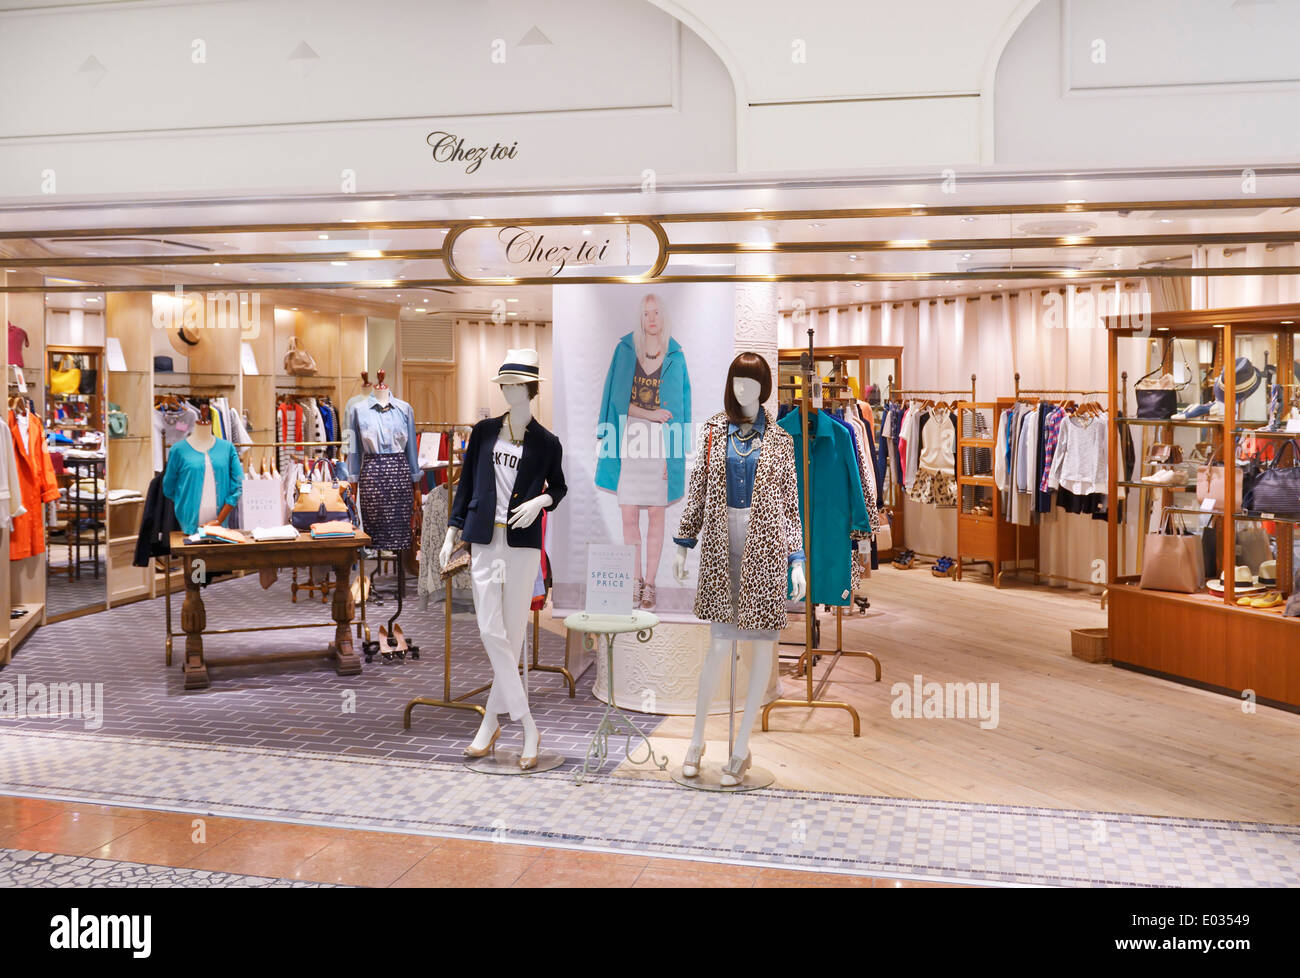 Chez Toi clothing store in Tokyo, Japan - Stock Image